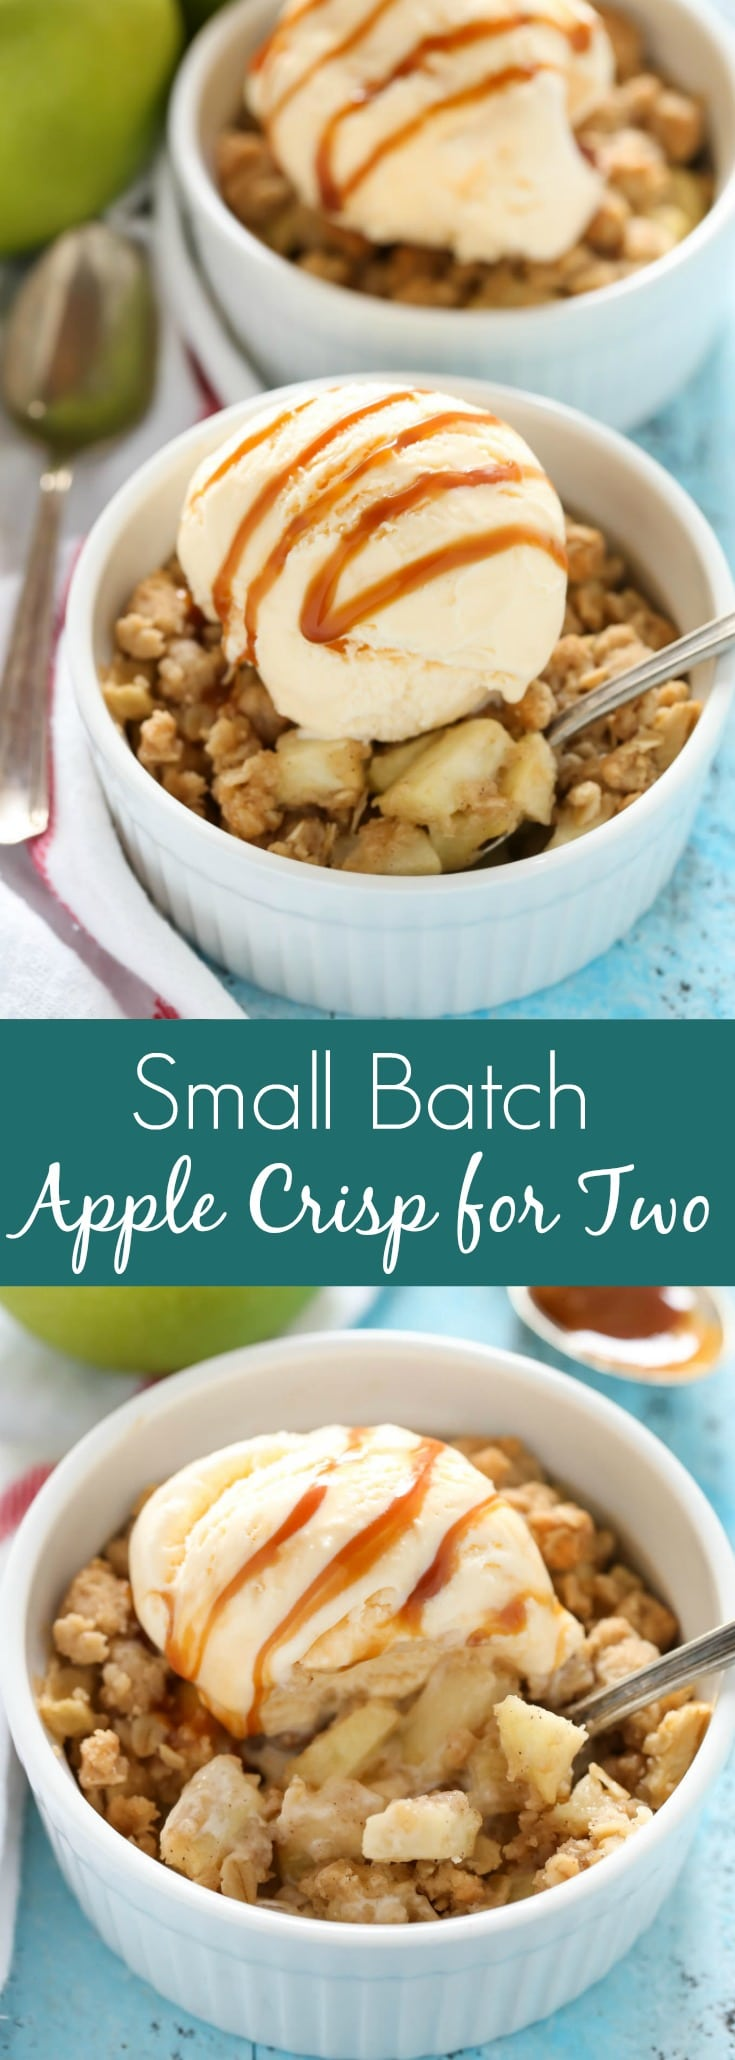 Witching Two Is Easy To Make Two Pumpkin Dessert A Small Batch Dessertfor Apple Crisp Two Vegan Brownies Two Dessert This Apple Crisp nice food Dessert For Two